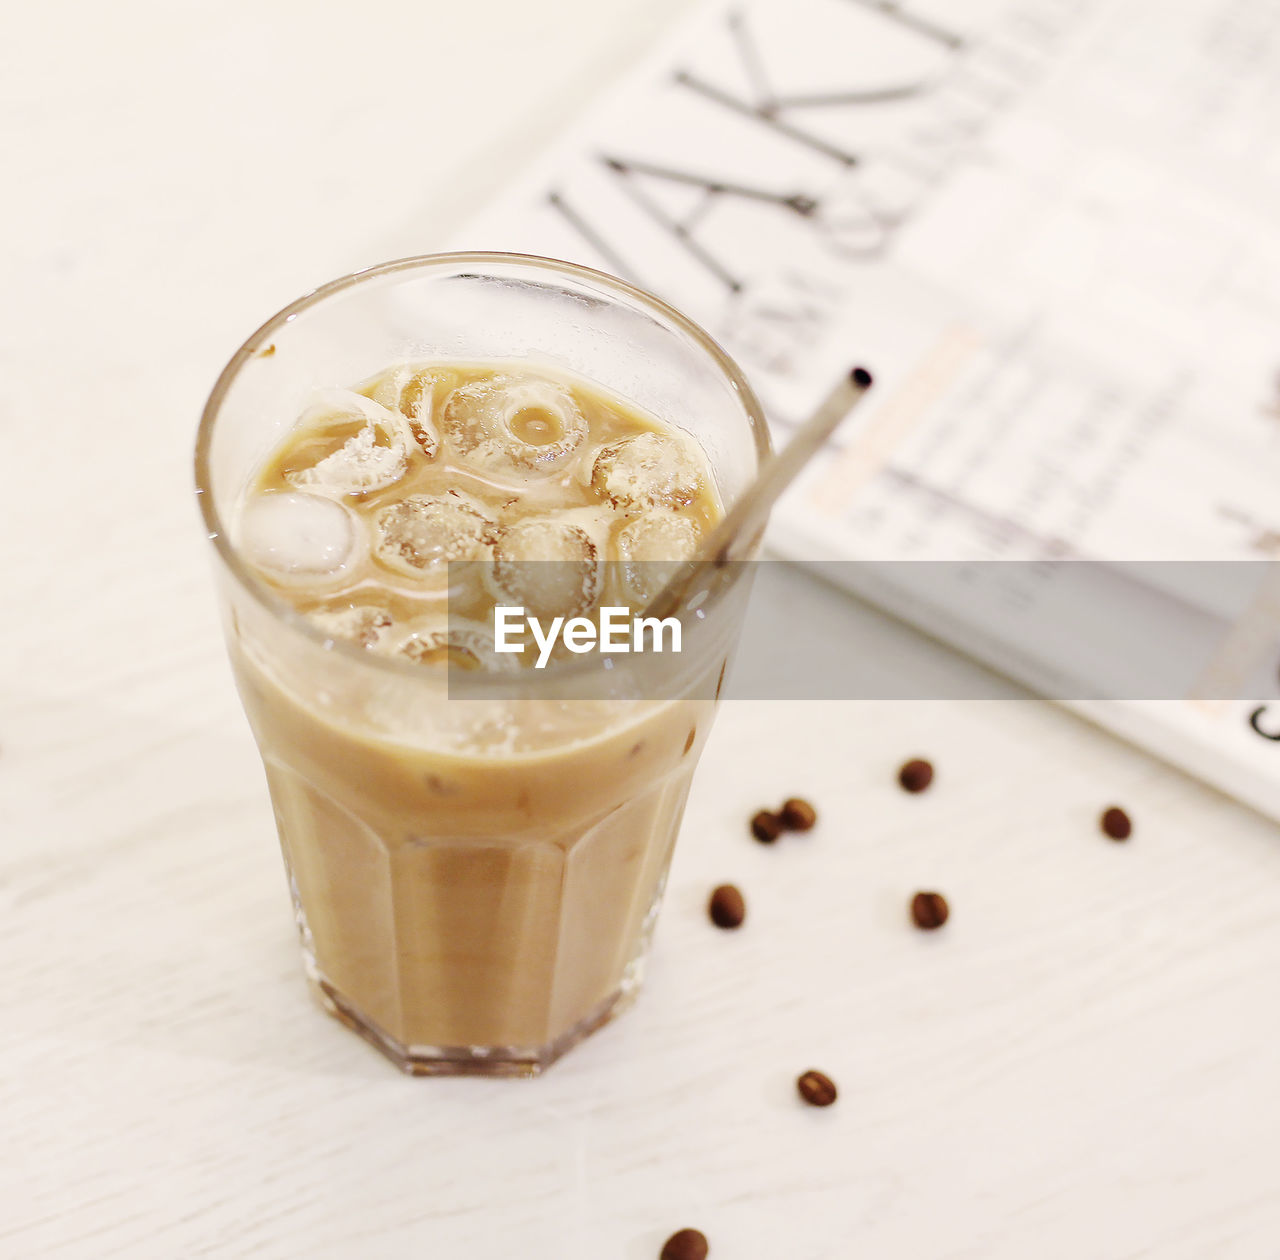 HIGH ANGLE VIEW OF COFFEE WITH GLASS ON TABLE